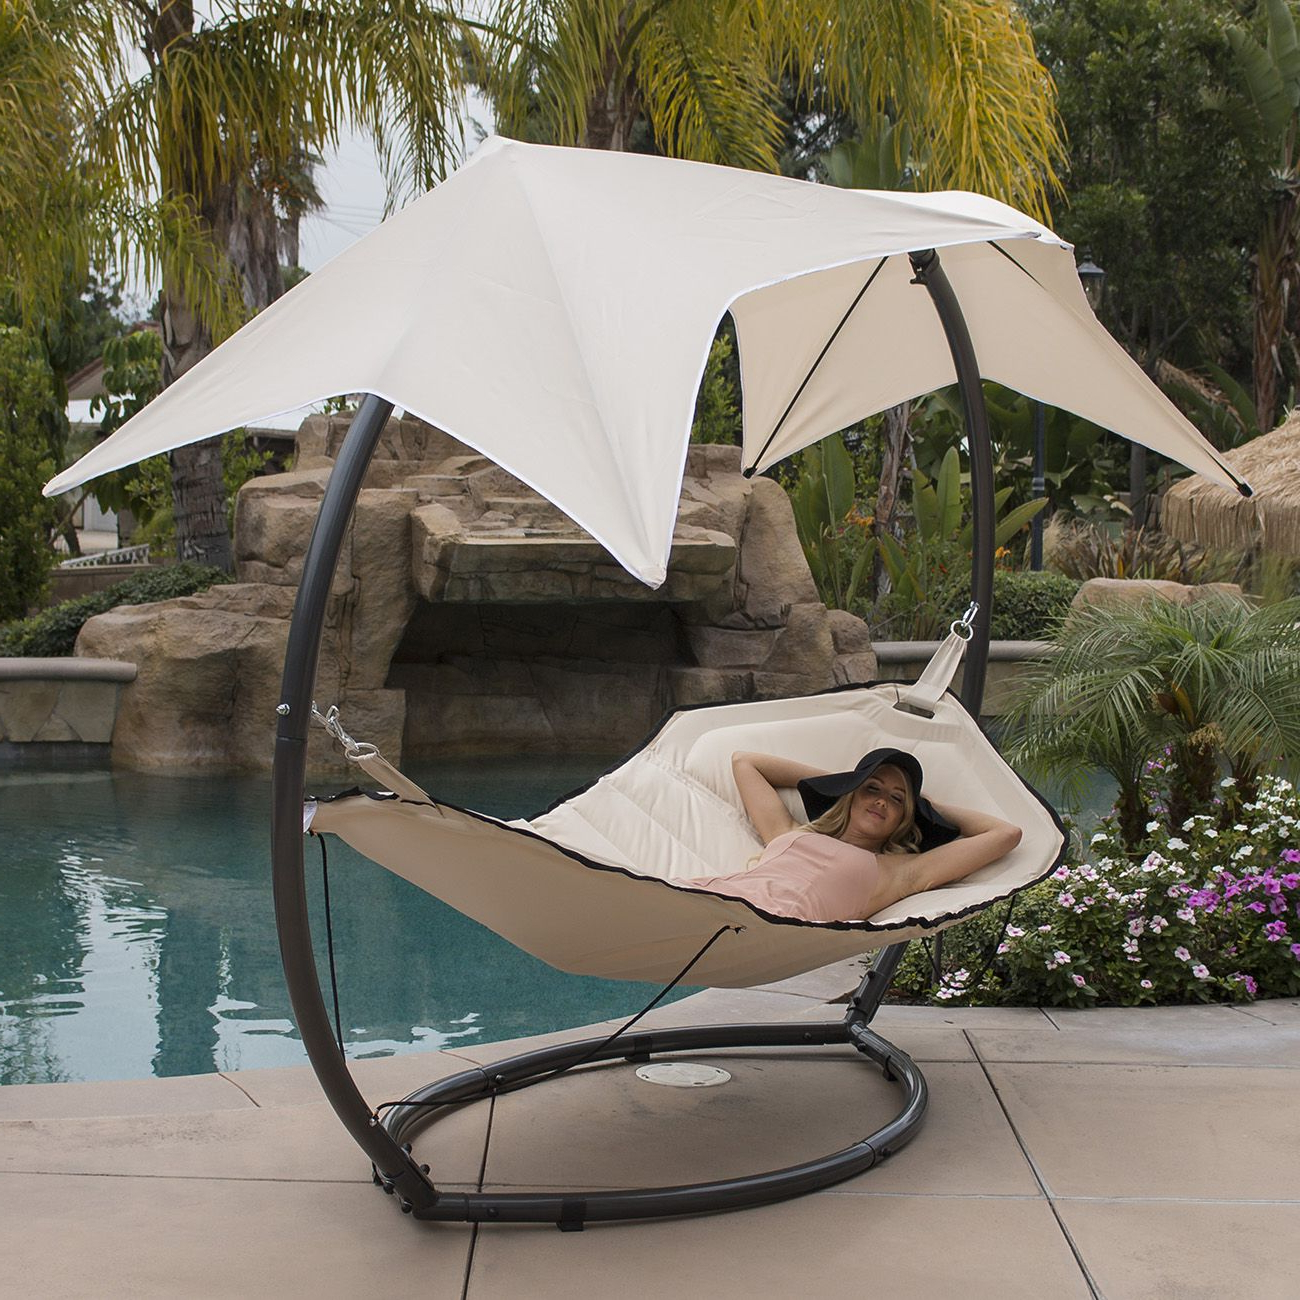 Belleze Belleze Patio Hammock W/ Sunroof Canopy Outdoor Throughout Well Known Garden Leisure Outdoor Hammock Patio Canopy Rocking Chairs (View 5 of 30)